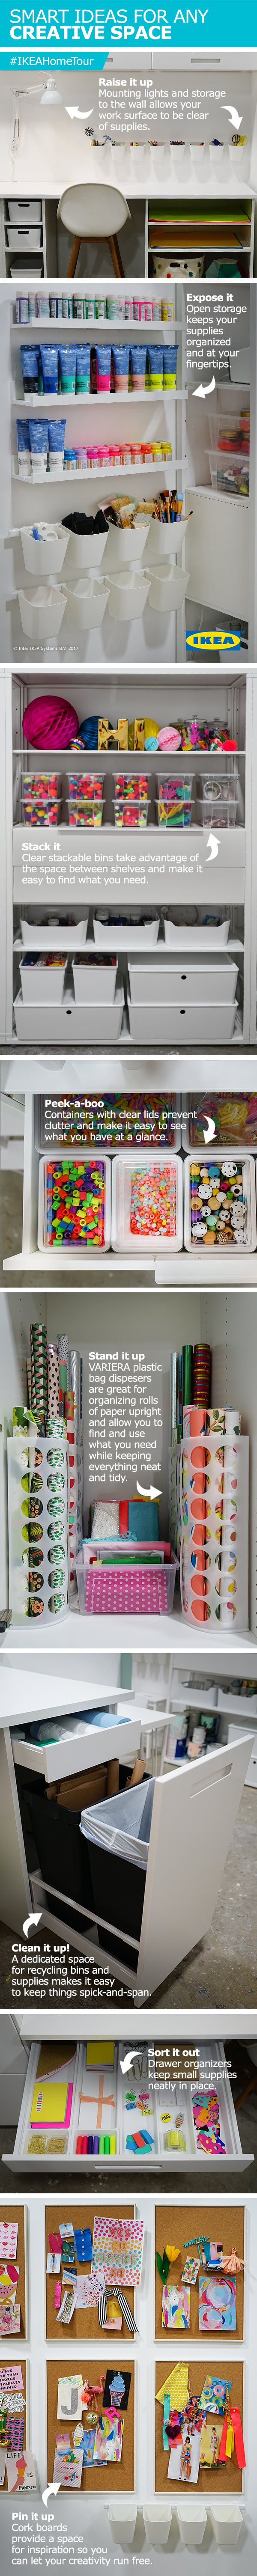 Find smart ideas for any creative space with help from the IKEA Home Tour Squad and Oh Joy! Things like mounting your lights and storage to the wall, clear stackable bins and drawer organizers will all help to keep your space organized and your items easily accesible.